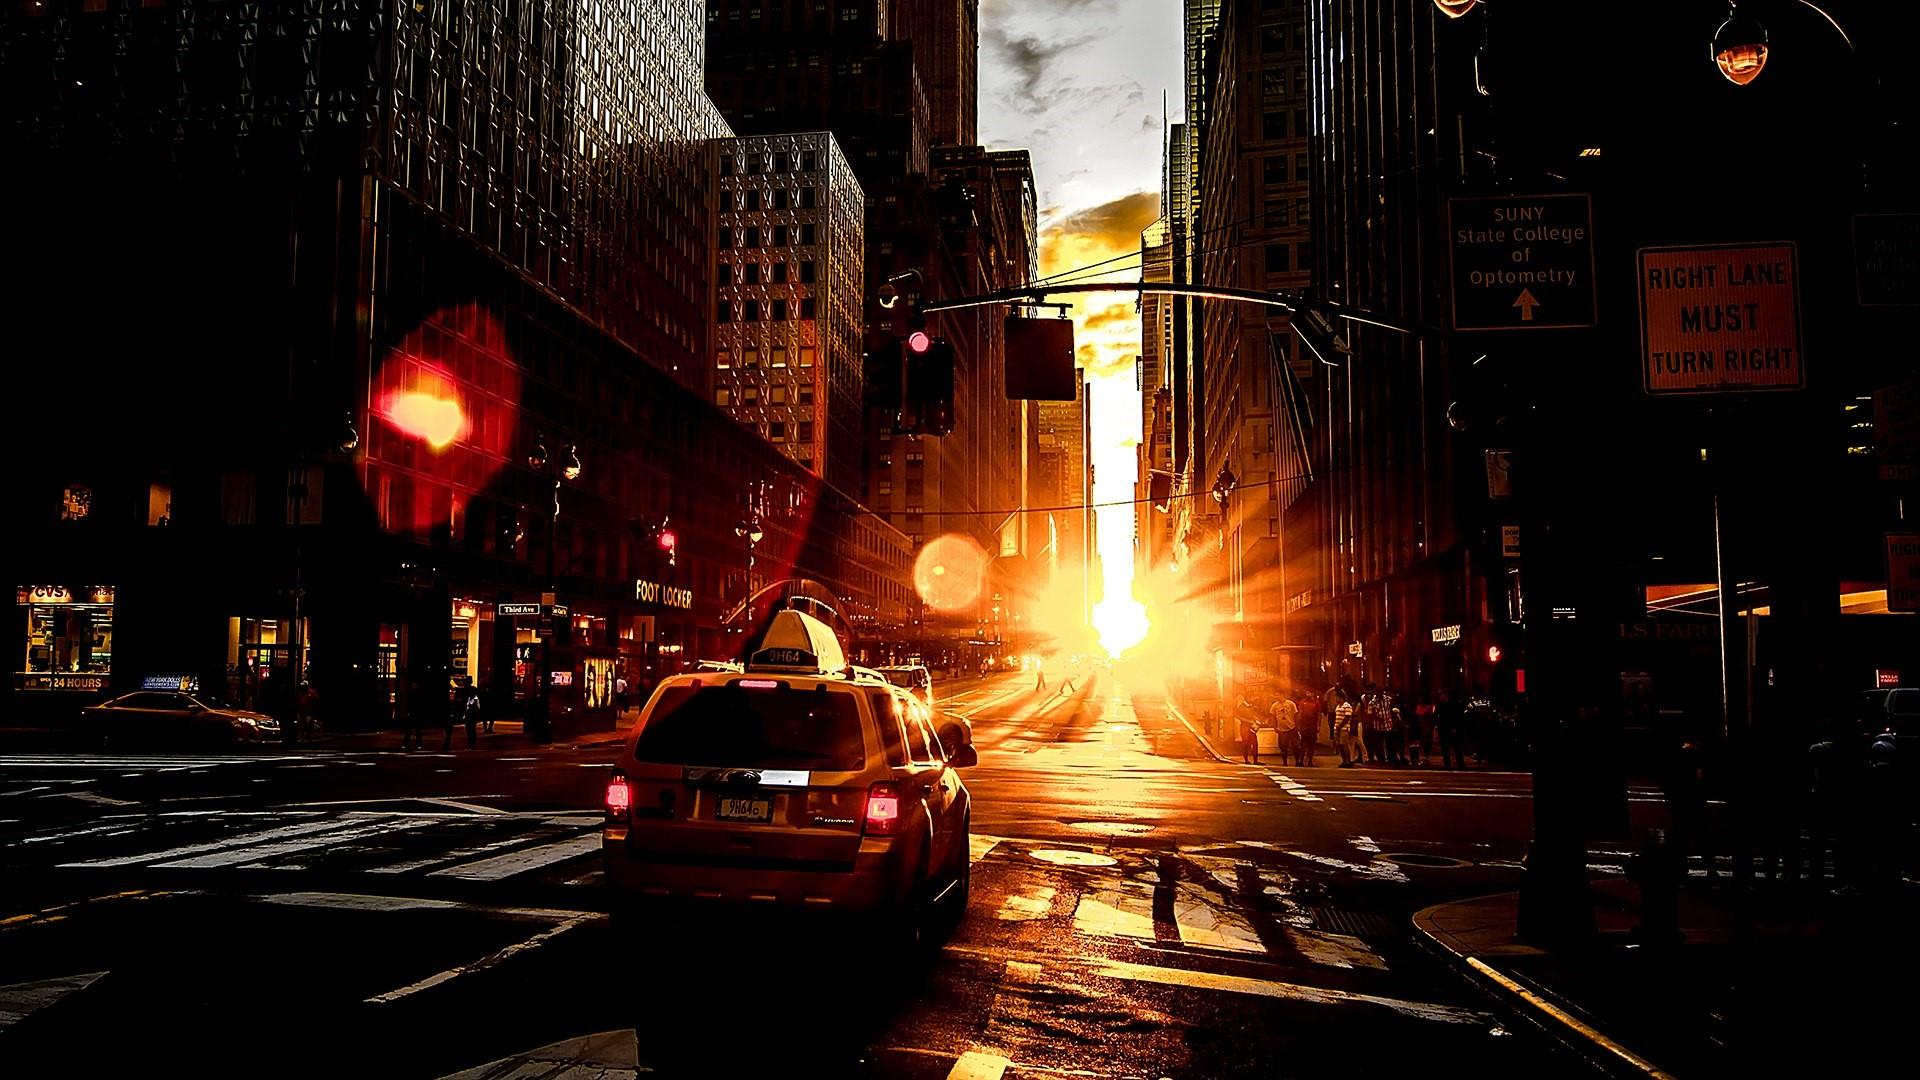 Taxi Cab In The Sunset Wallpaper Wallpaper Studio  Tens of